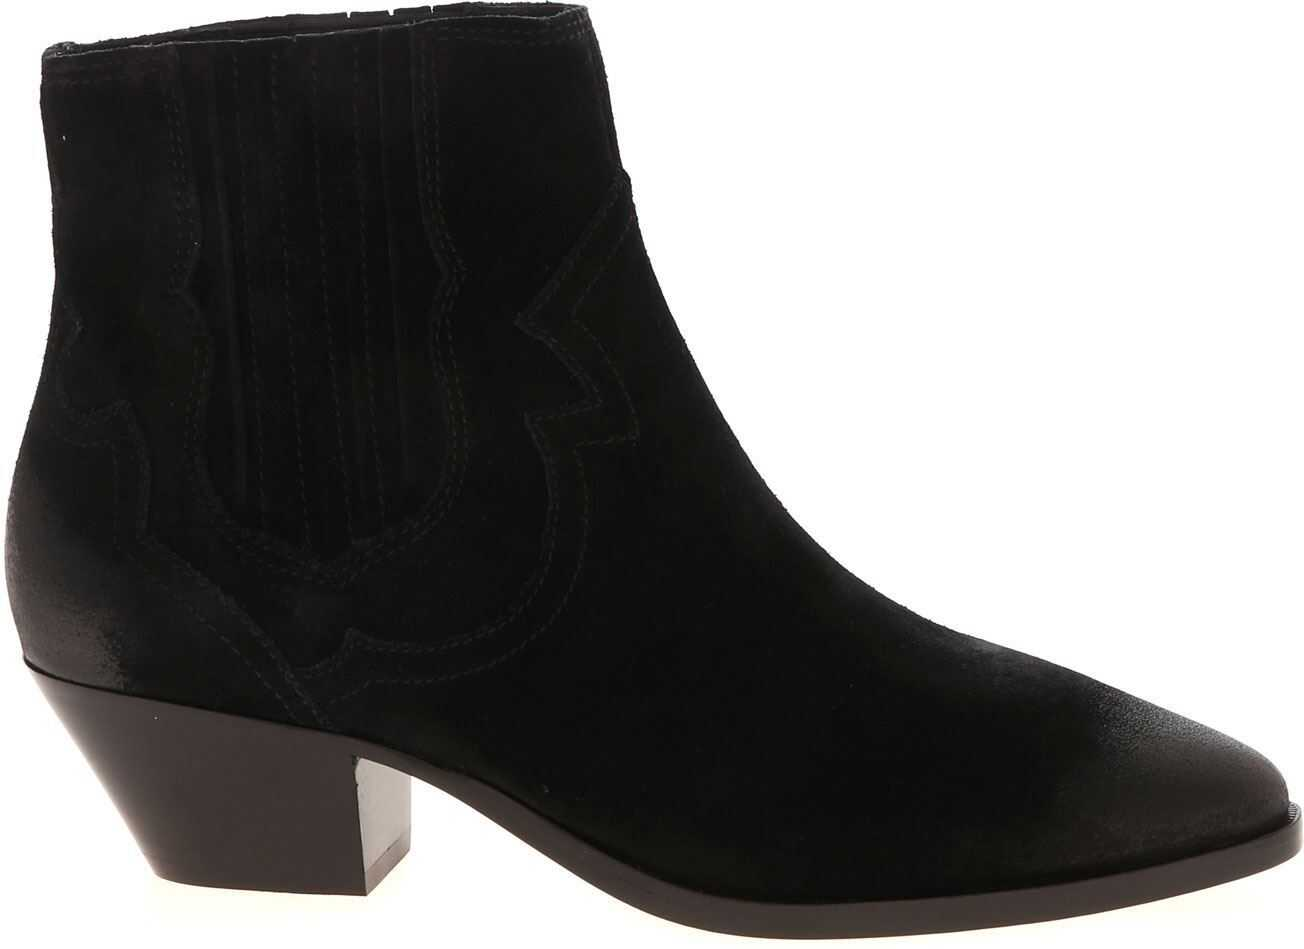 ASH Falcon Suede Ankle Boots In Black Black